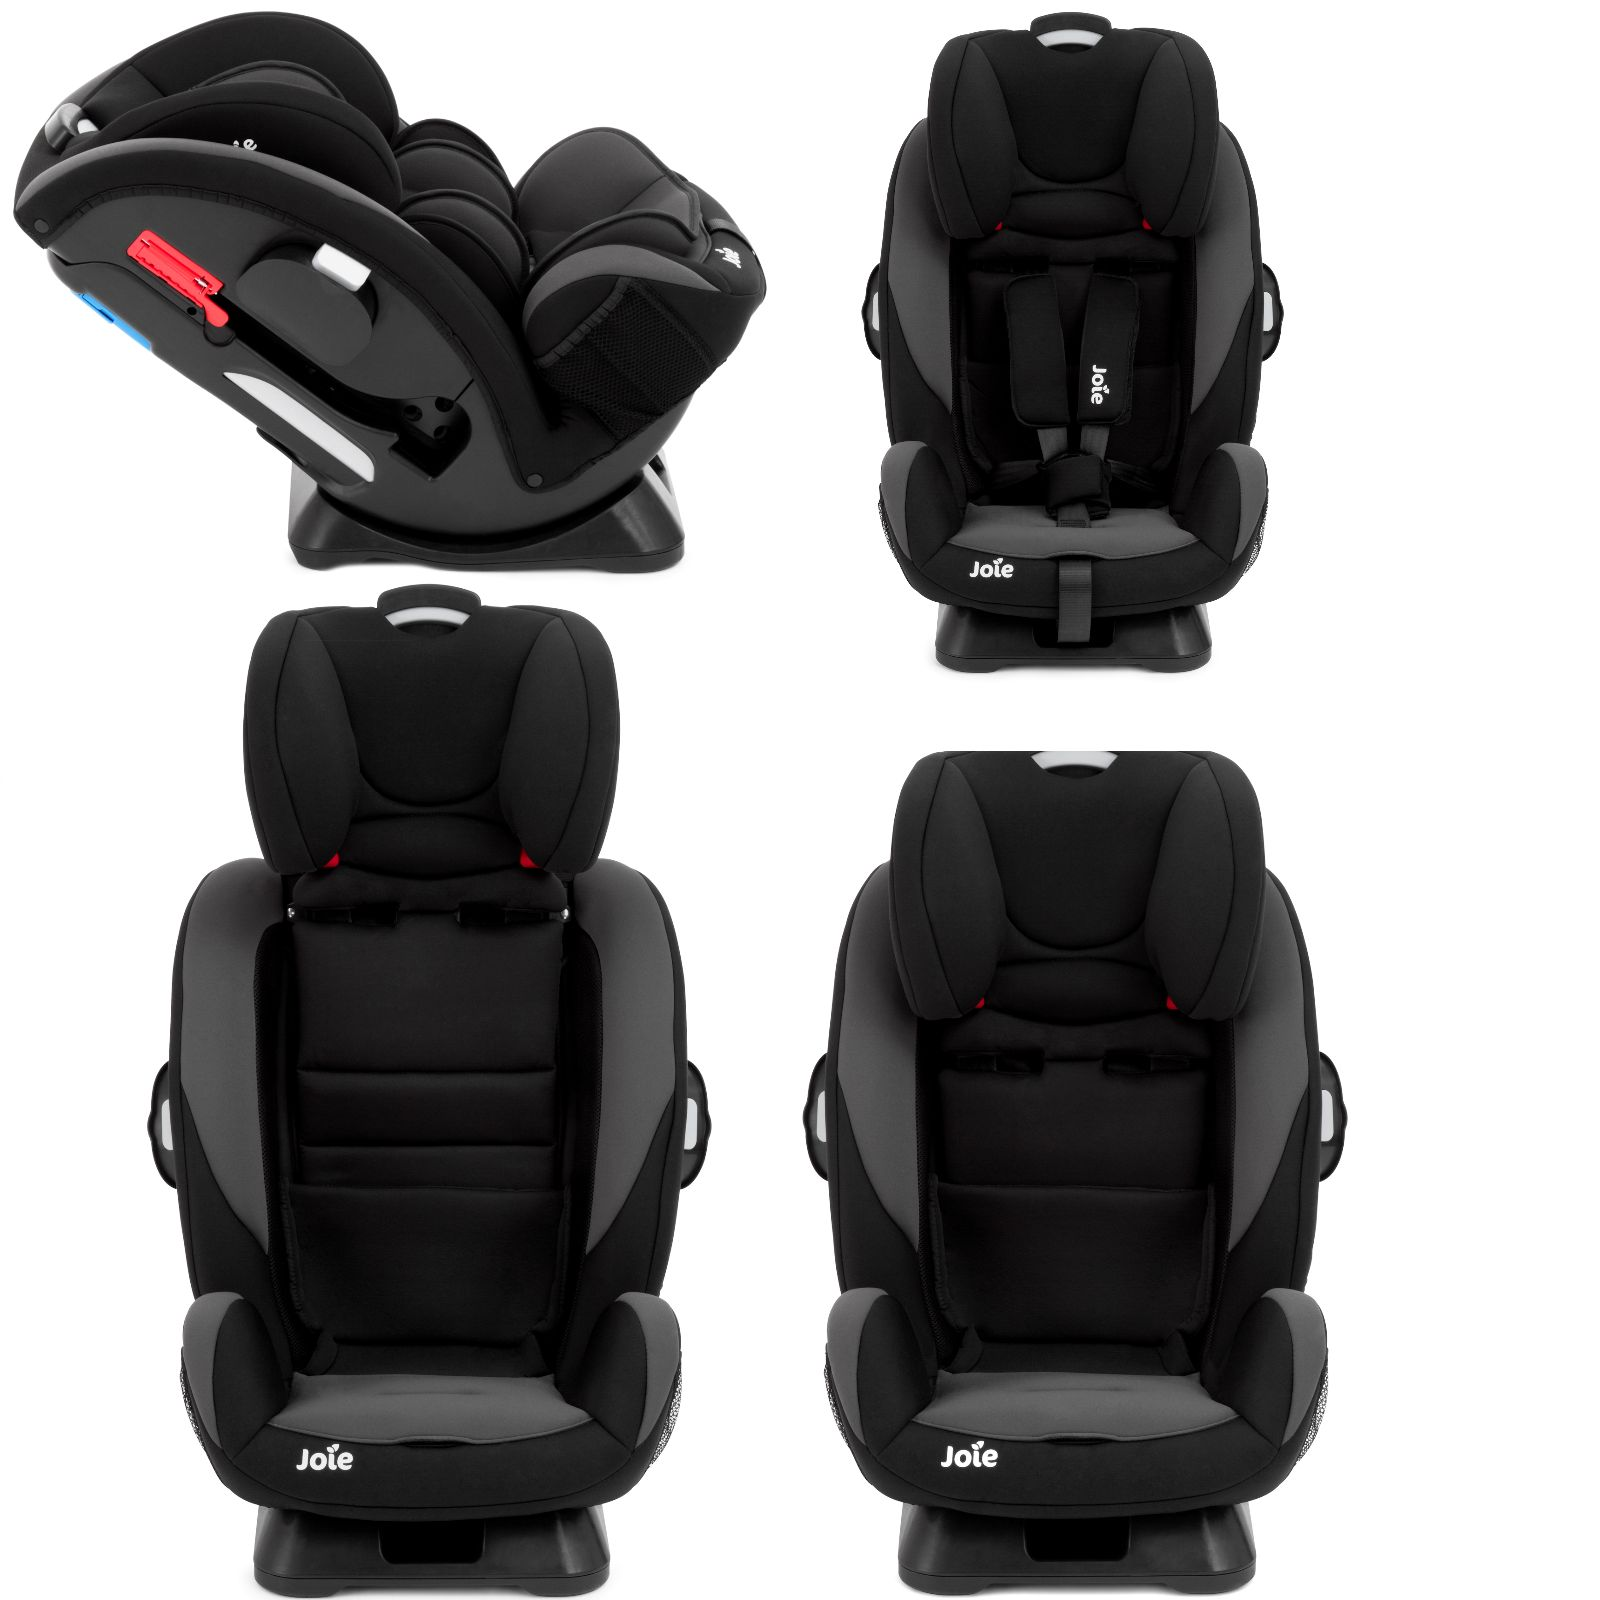 joie every stage two tone black group 0 1 2 3 car seat. Black Bedroom Furniture Sets. Home Design Ideas